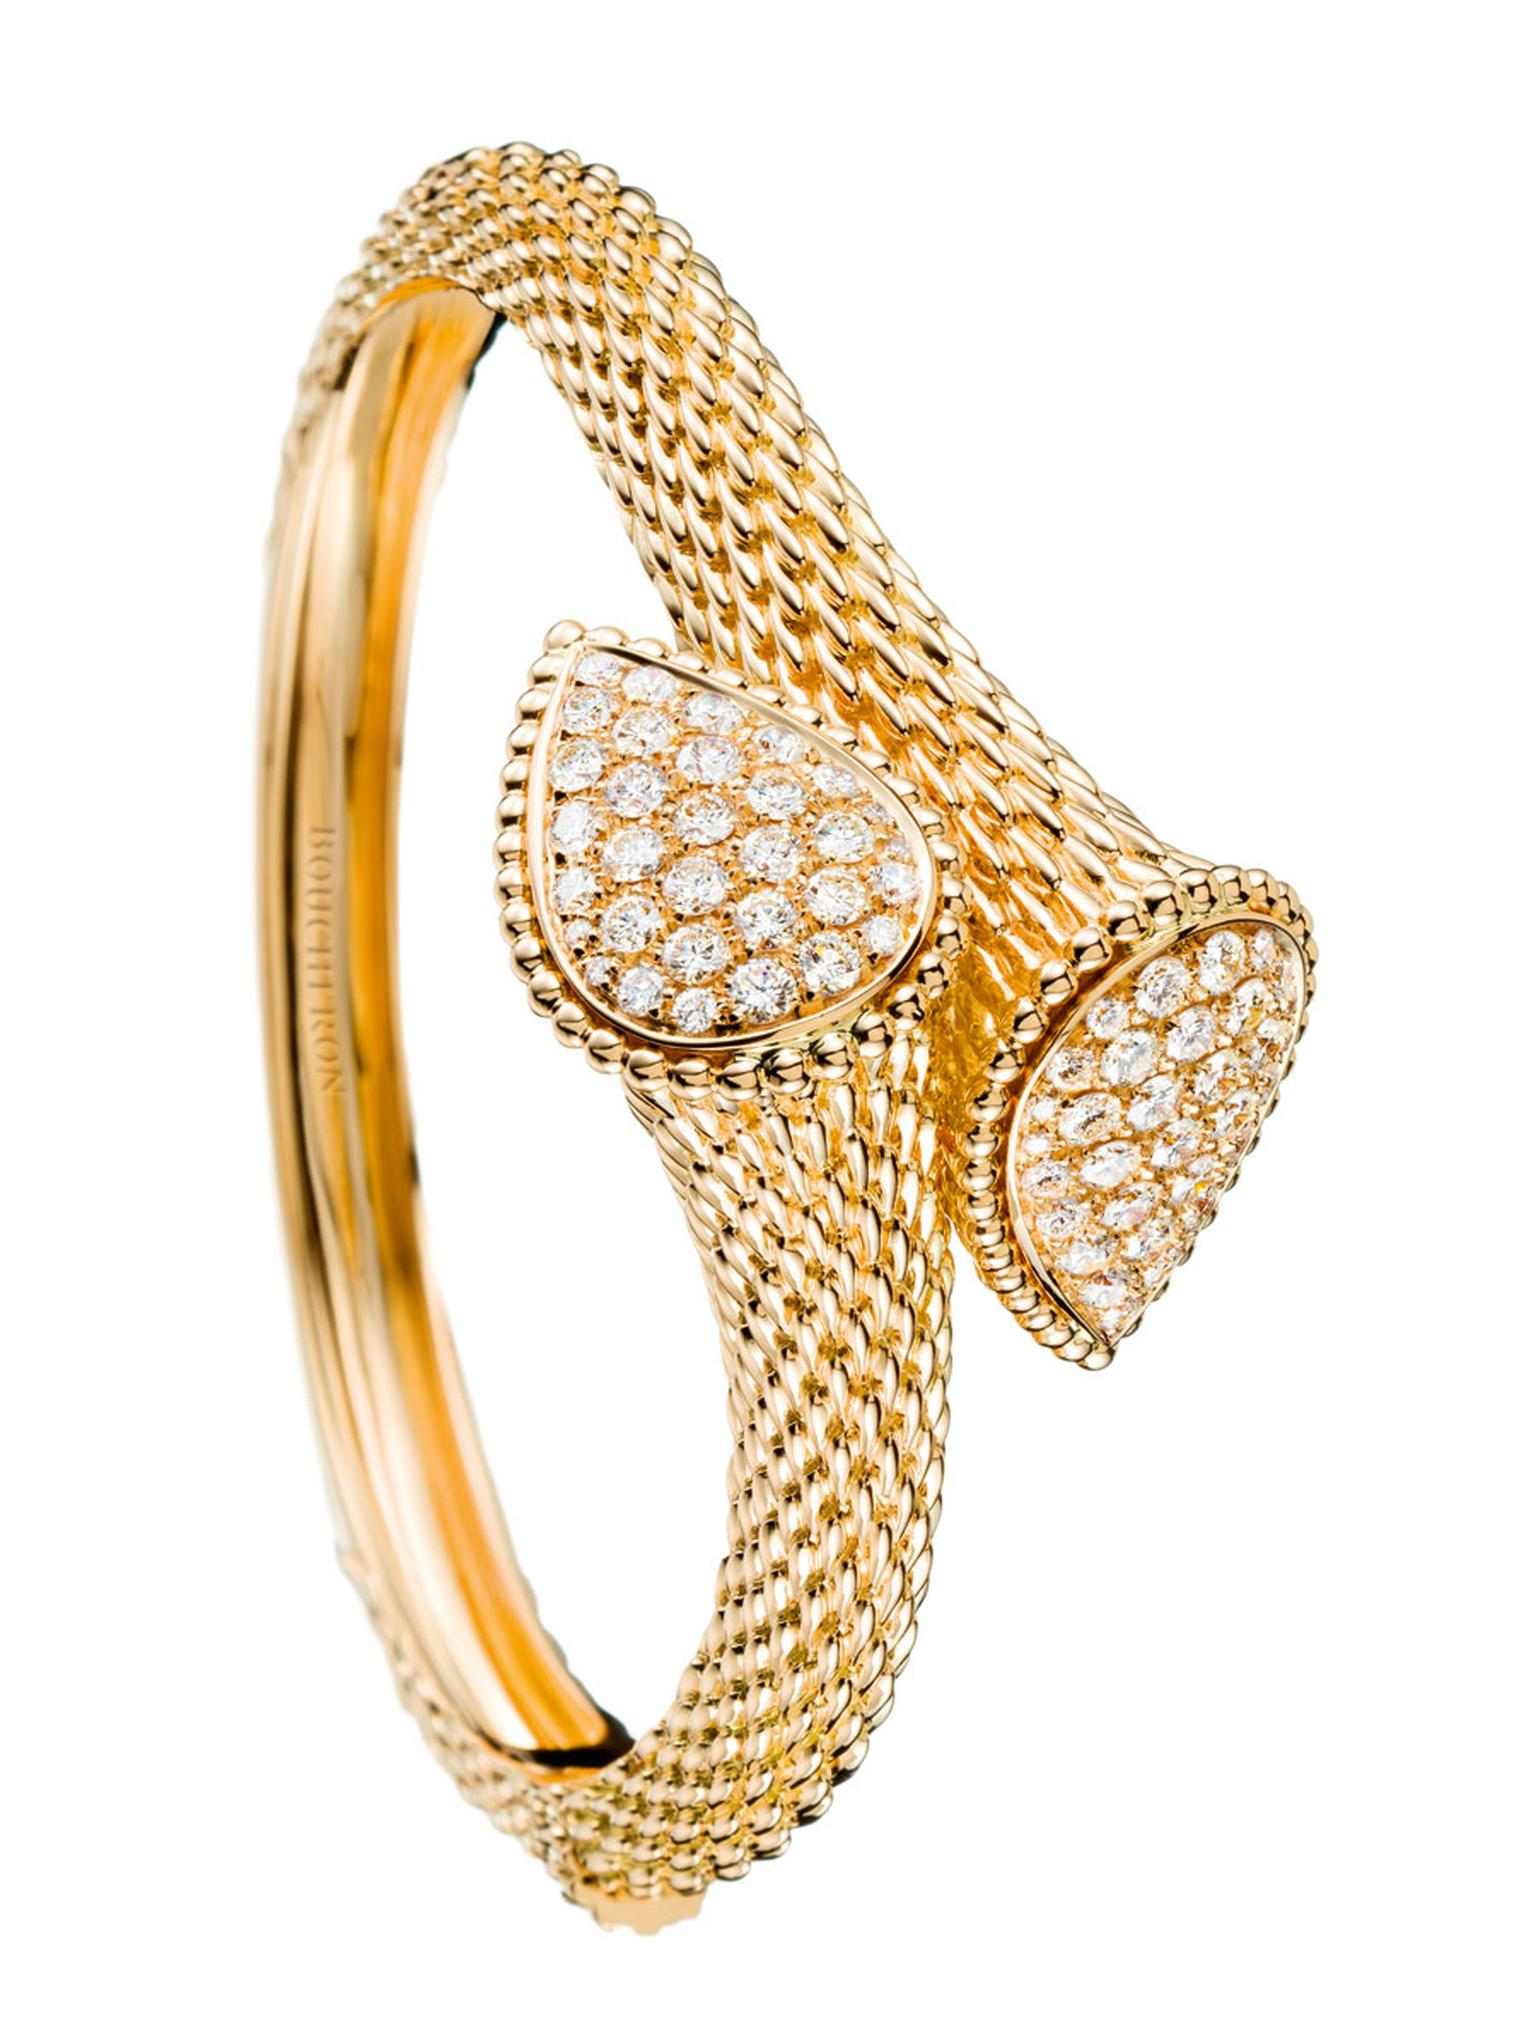 Serpent-Boheme-bangle-in-yellow-gold-set-with-diamonds.jpg